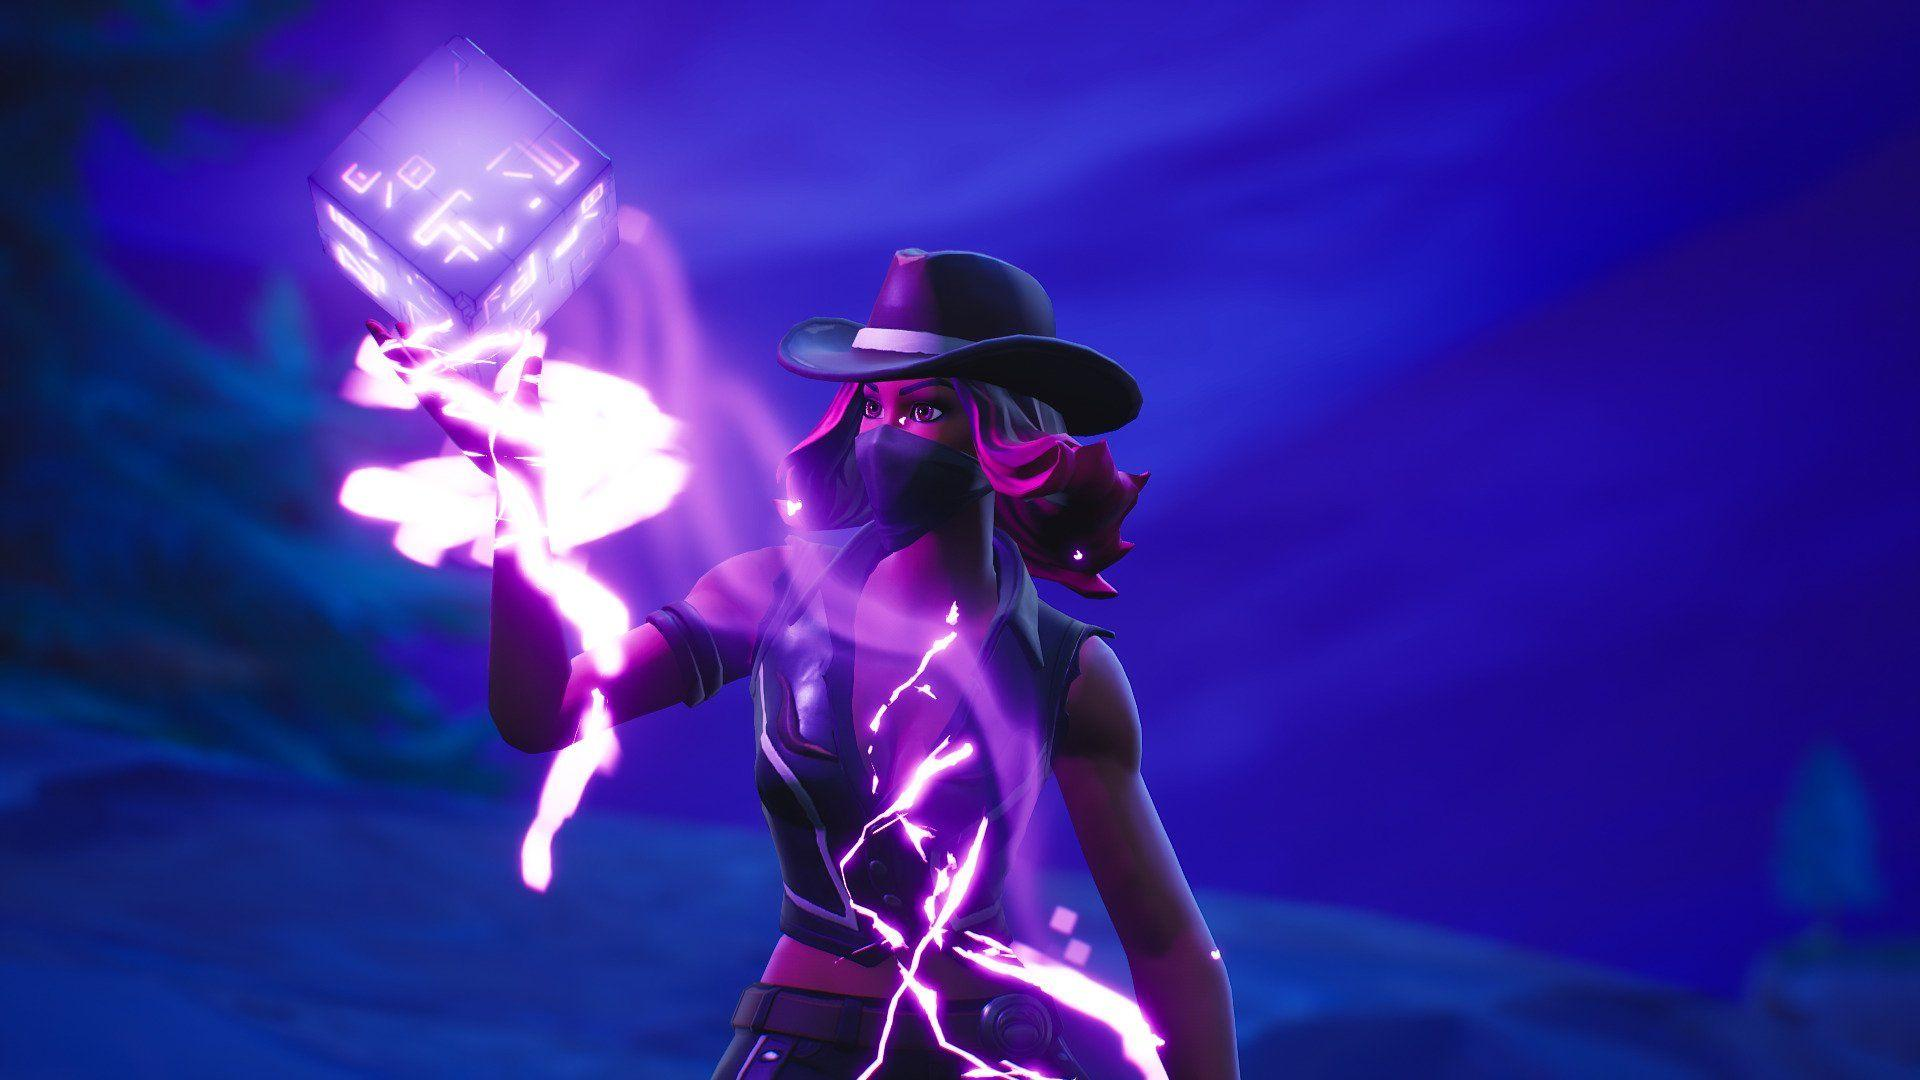 Calamity & Fortnite Cube by Davidbellver #4291 Wallpapers and Free ...